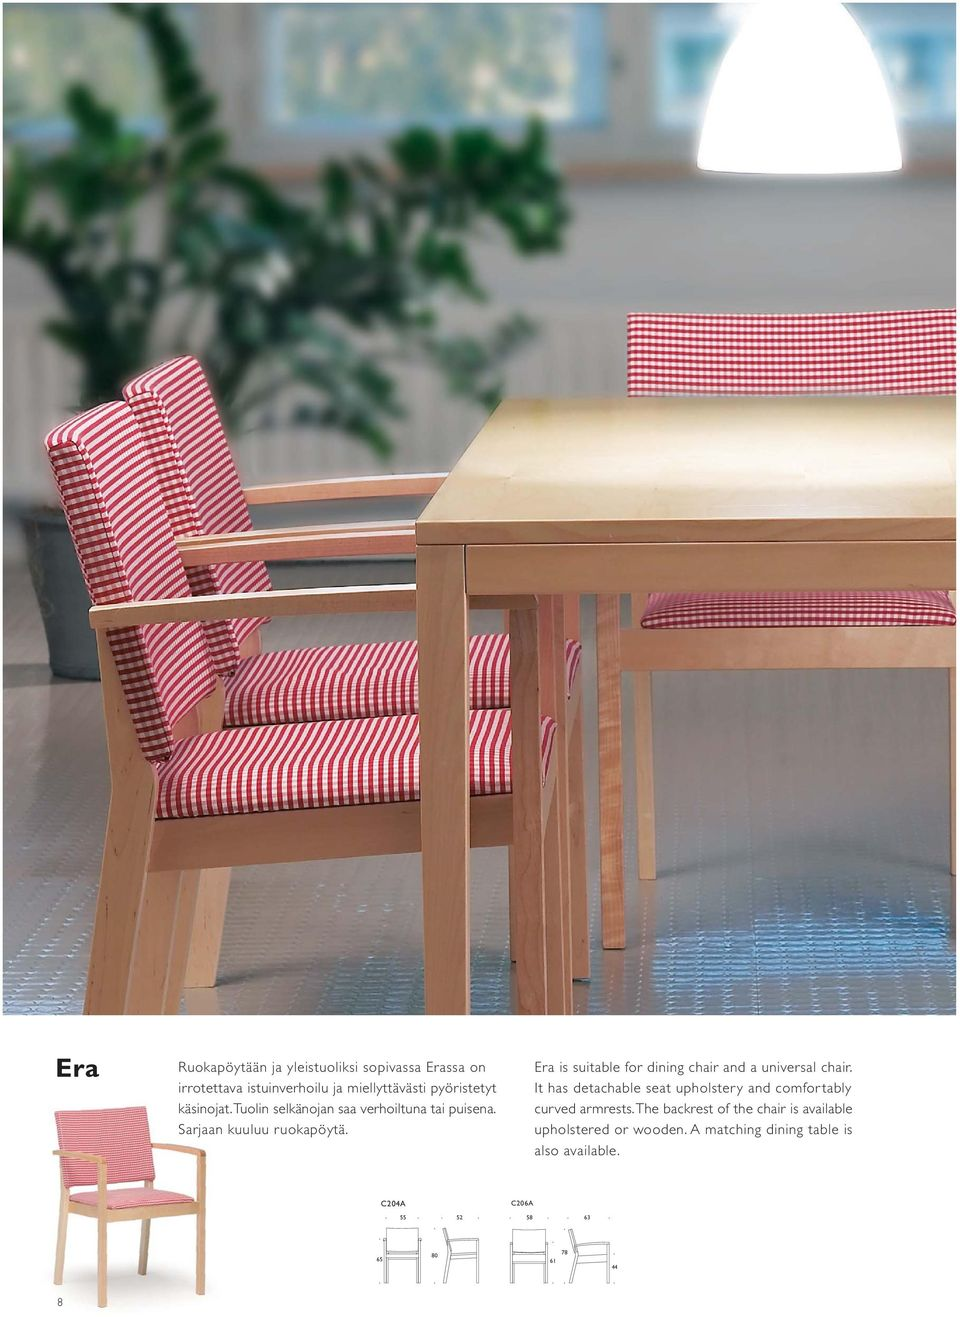 Era is suitable for dining chair and a universal chair.